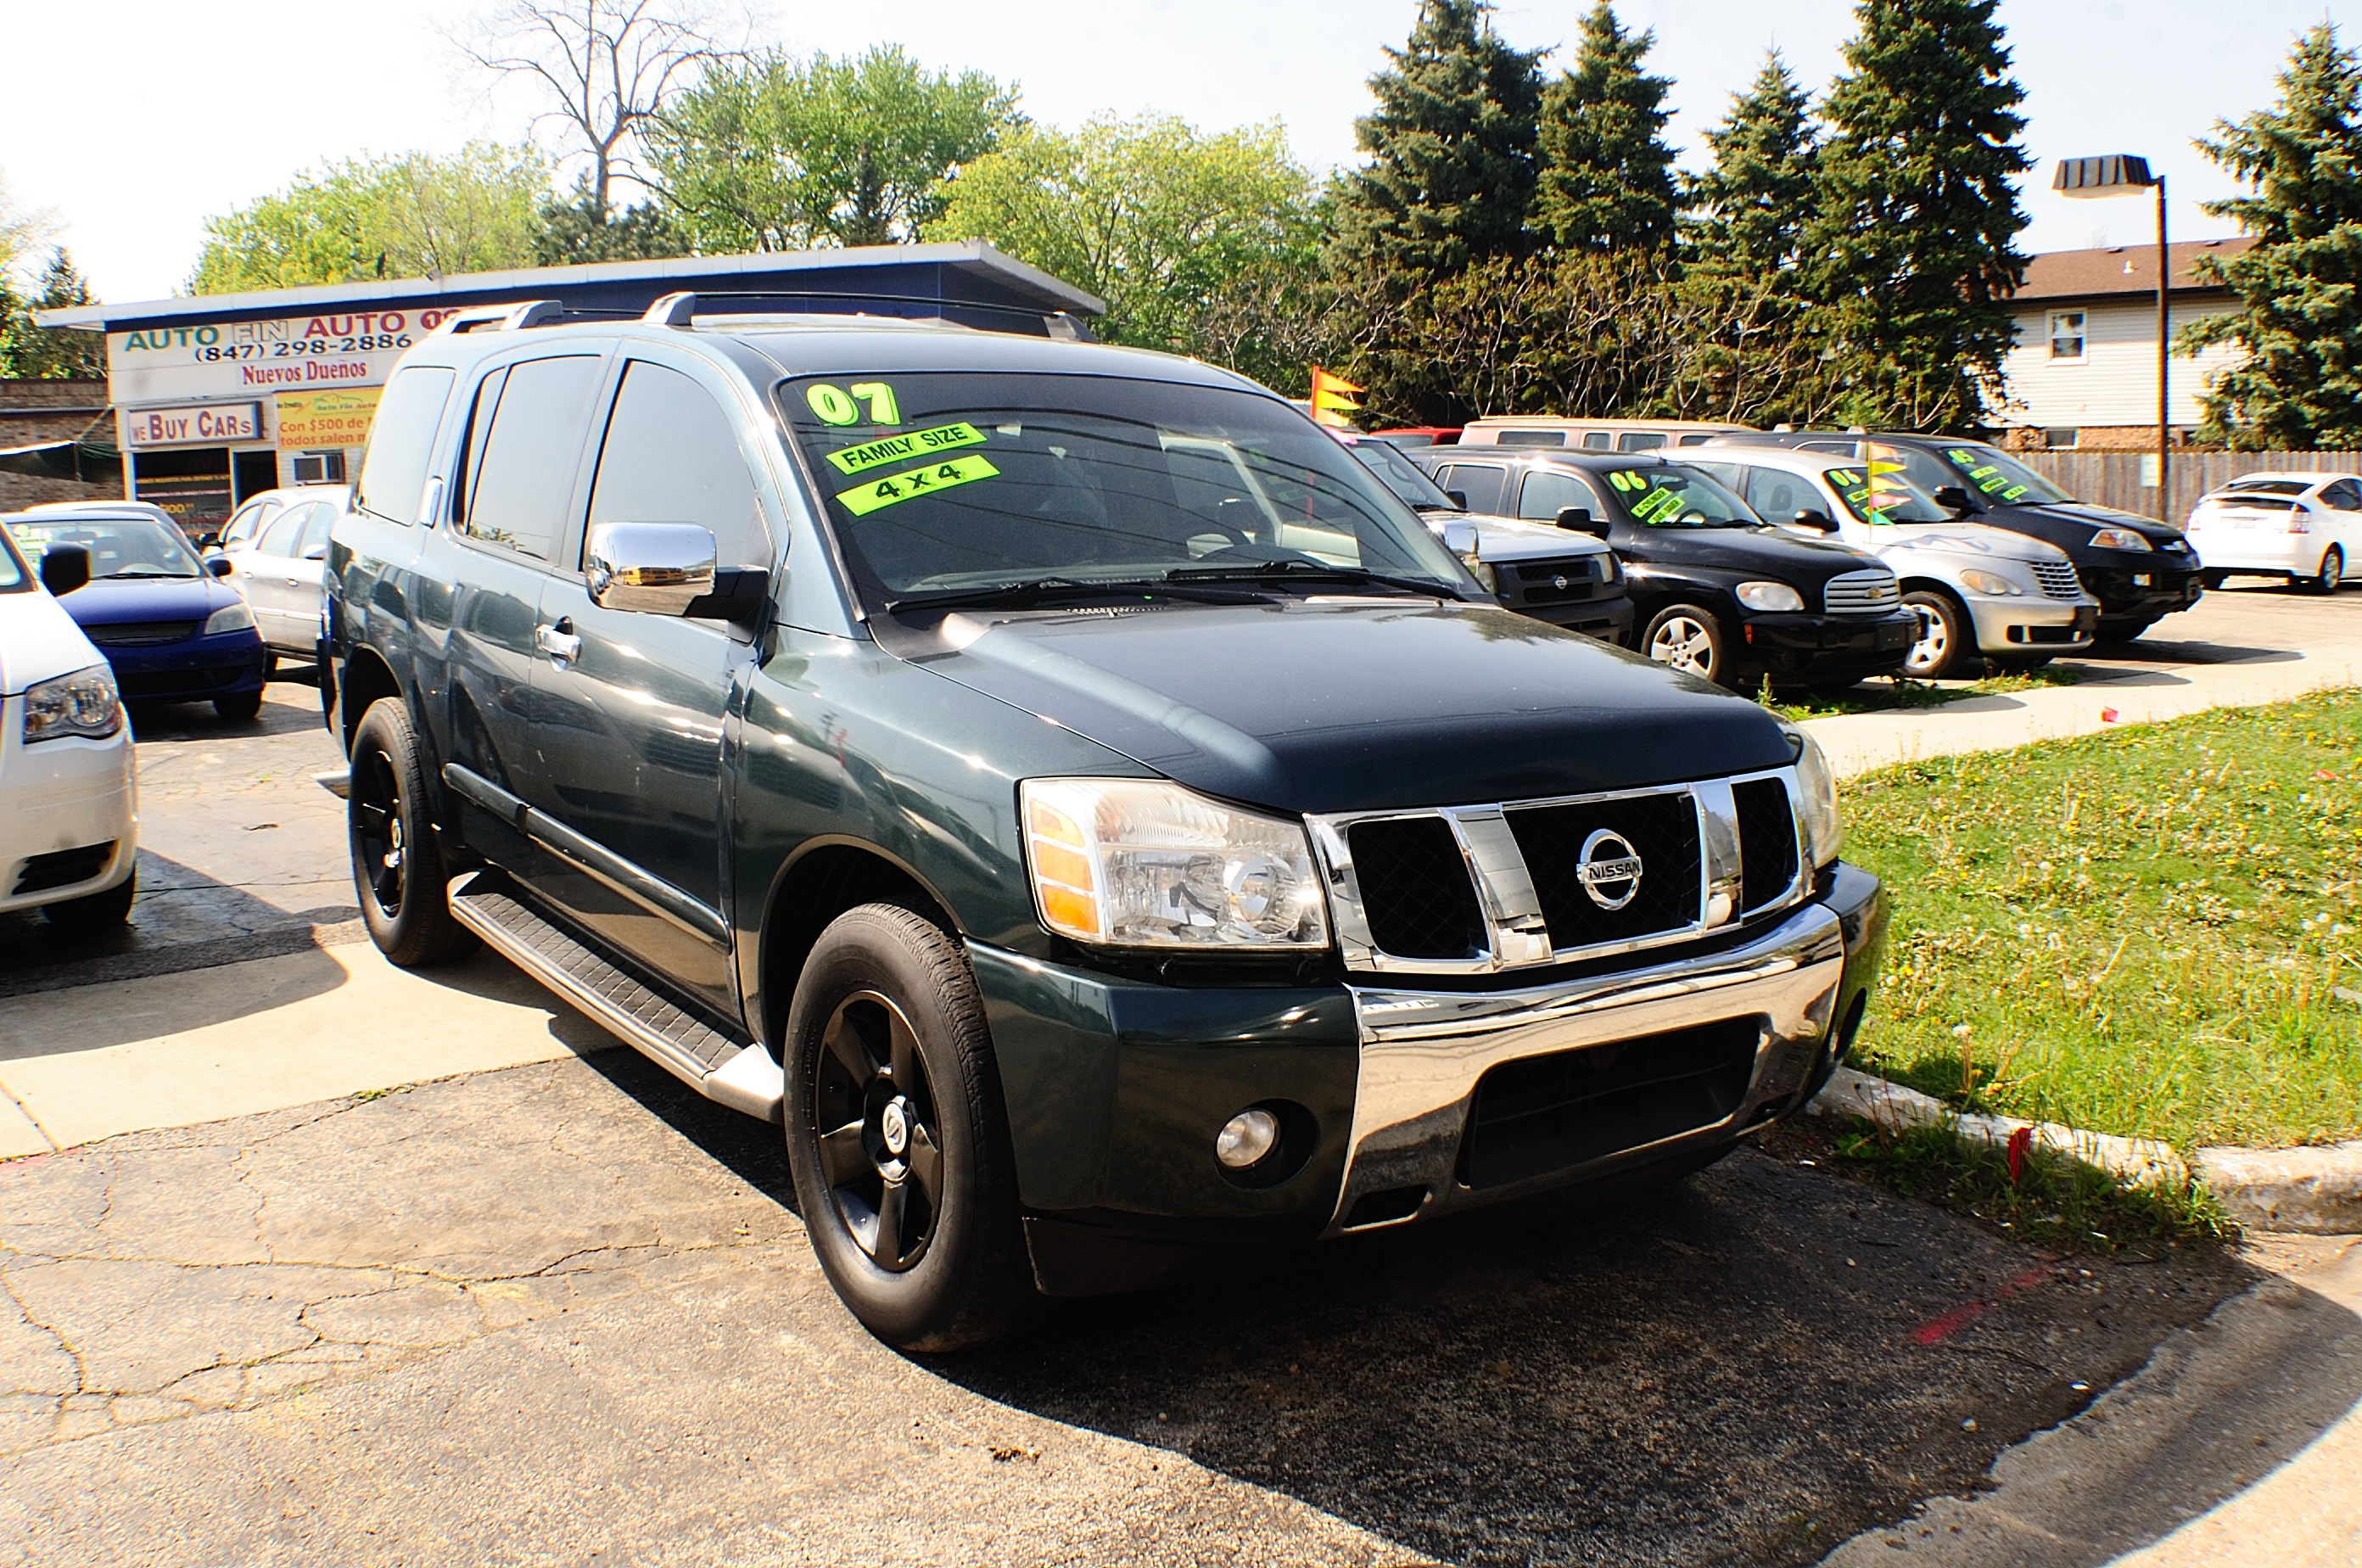 2007 Nissan Armada SE Green Used SUV car sale Buffalo Grove Bollingbrook Carol Stream